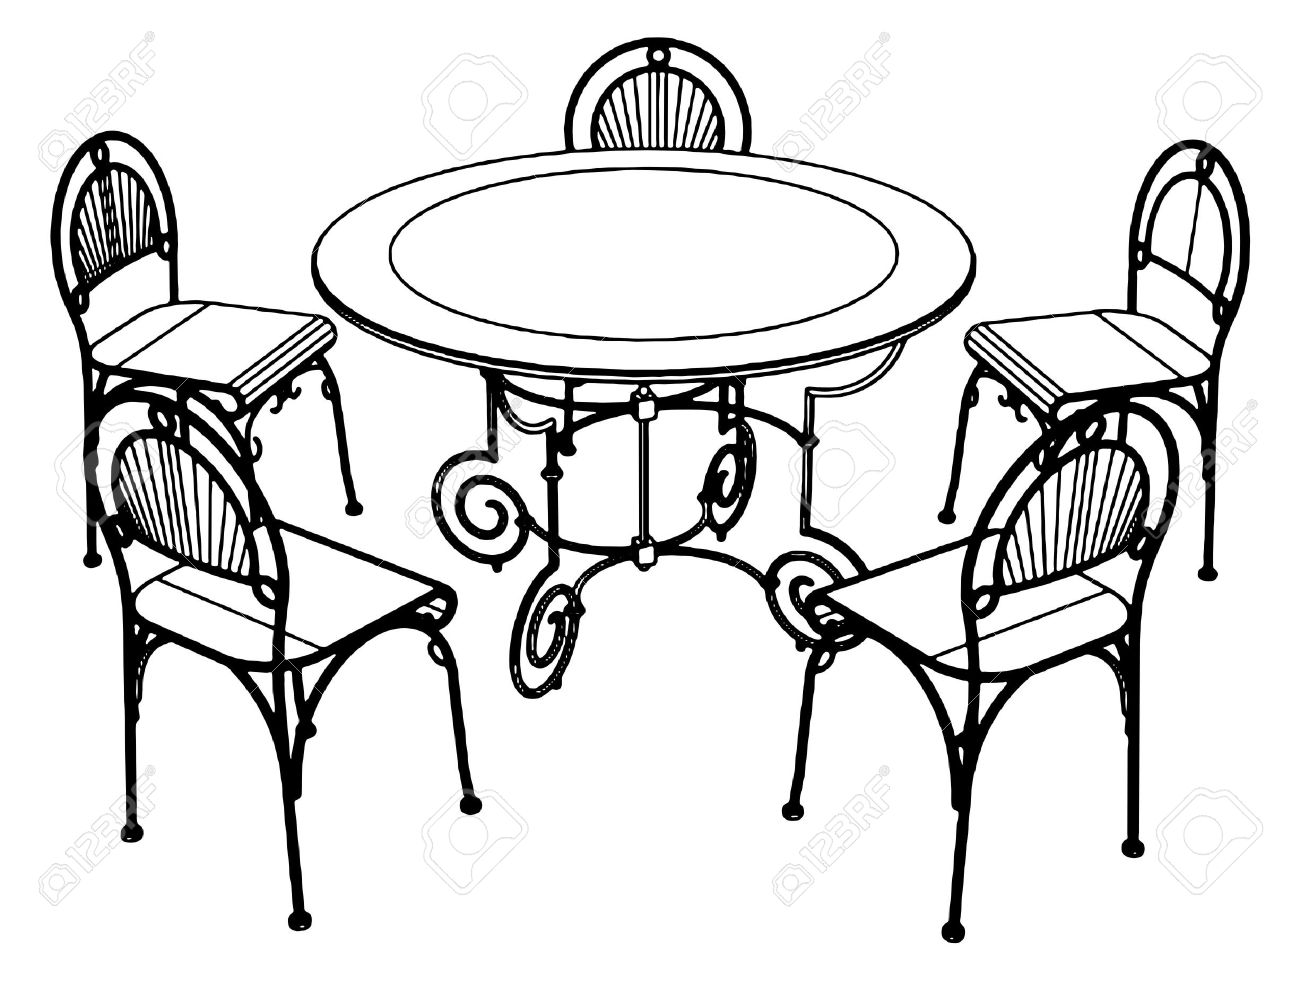 Free Chair Cliparts, Download Free Clip Art, Free Clip Art on Clipart  Library